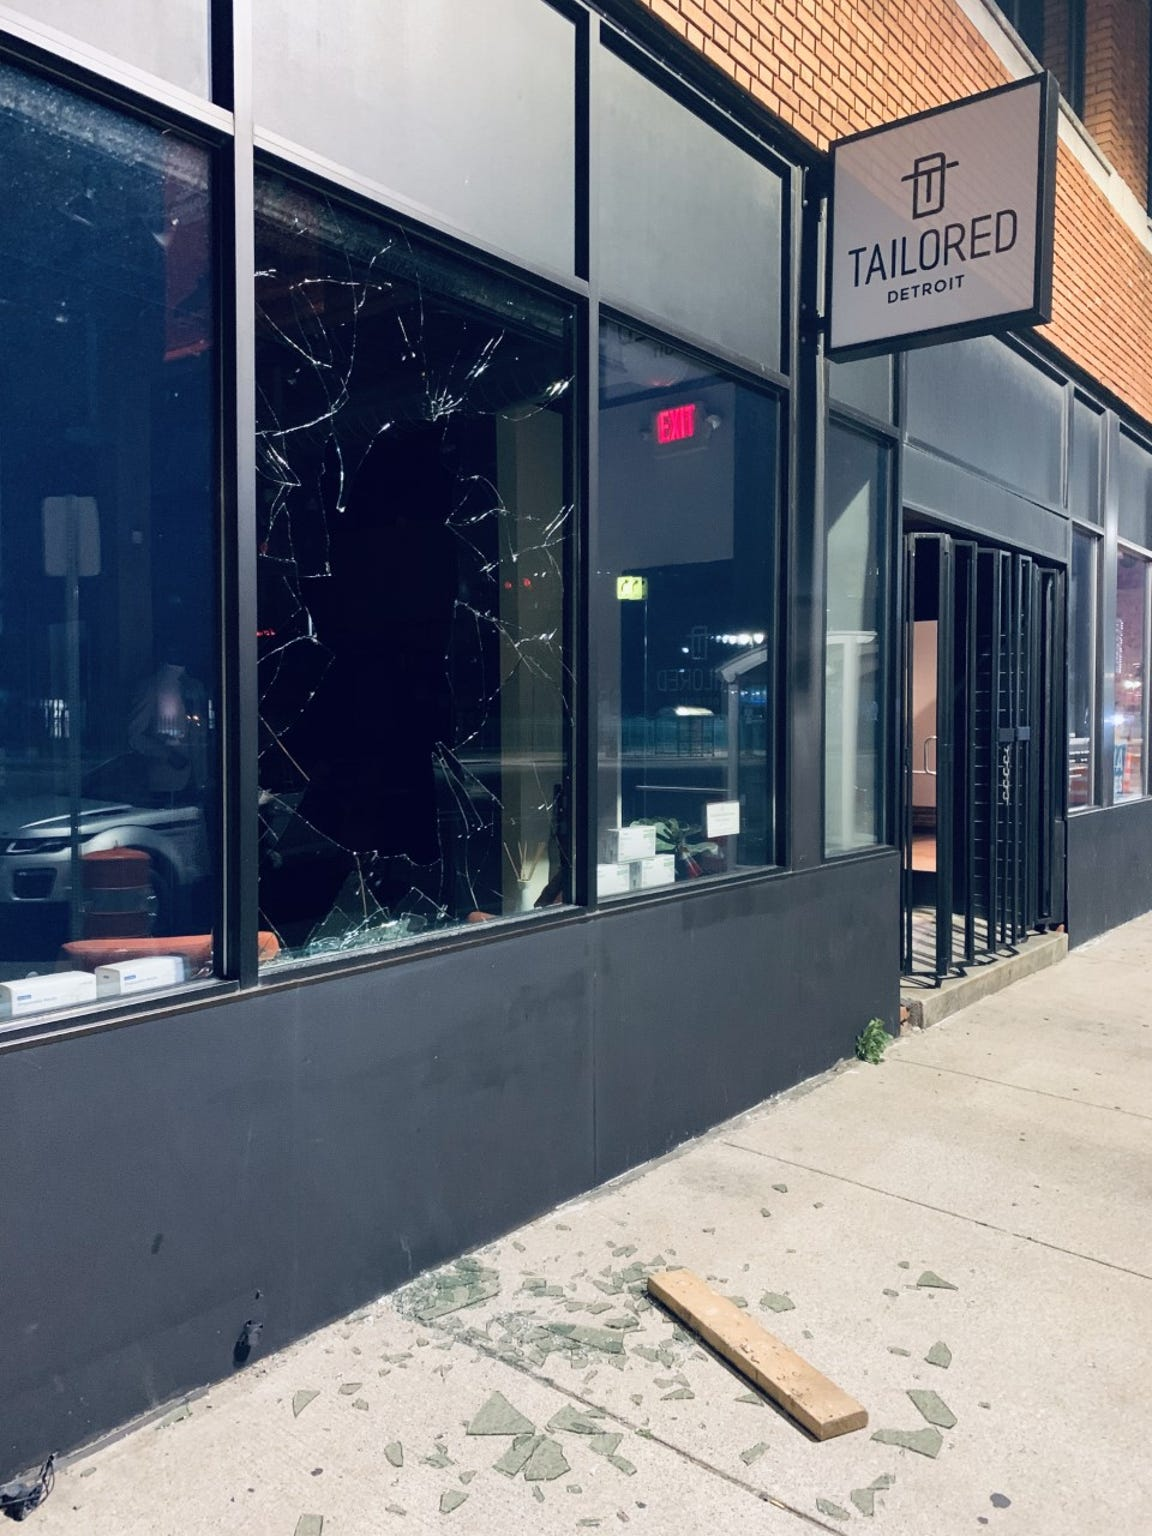 The would-be intruder at Tailored Detroit used a wooden plank and several chunks of concrete to break through a double-paned window.